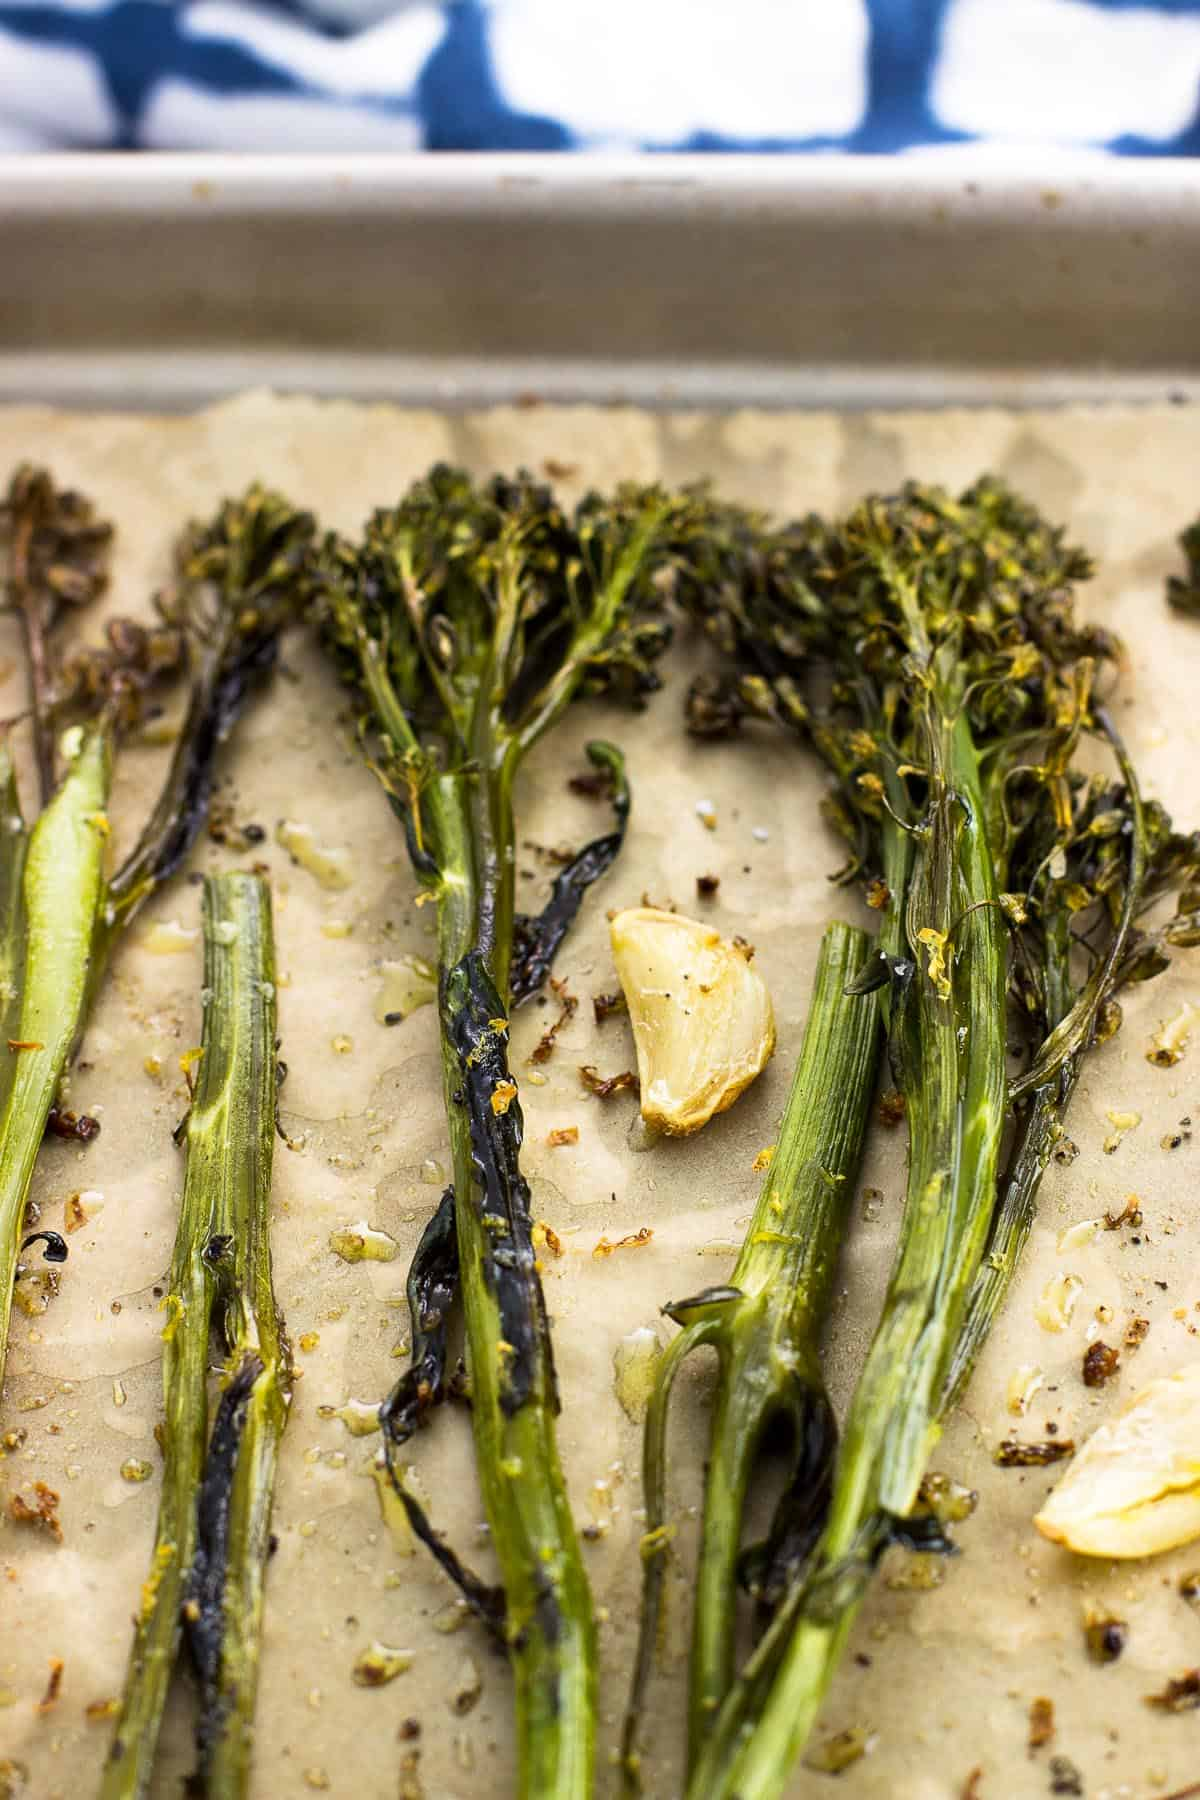 Broccolini and whole garlic cloves roasted on a parchment-lined baking sheet.